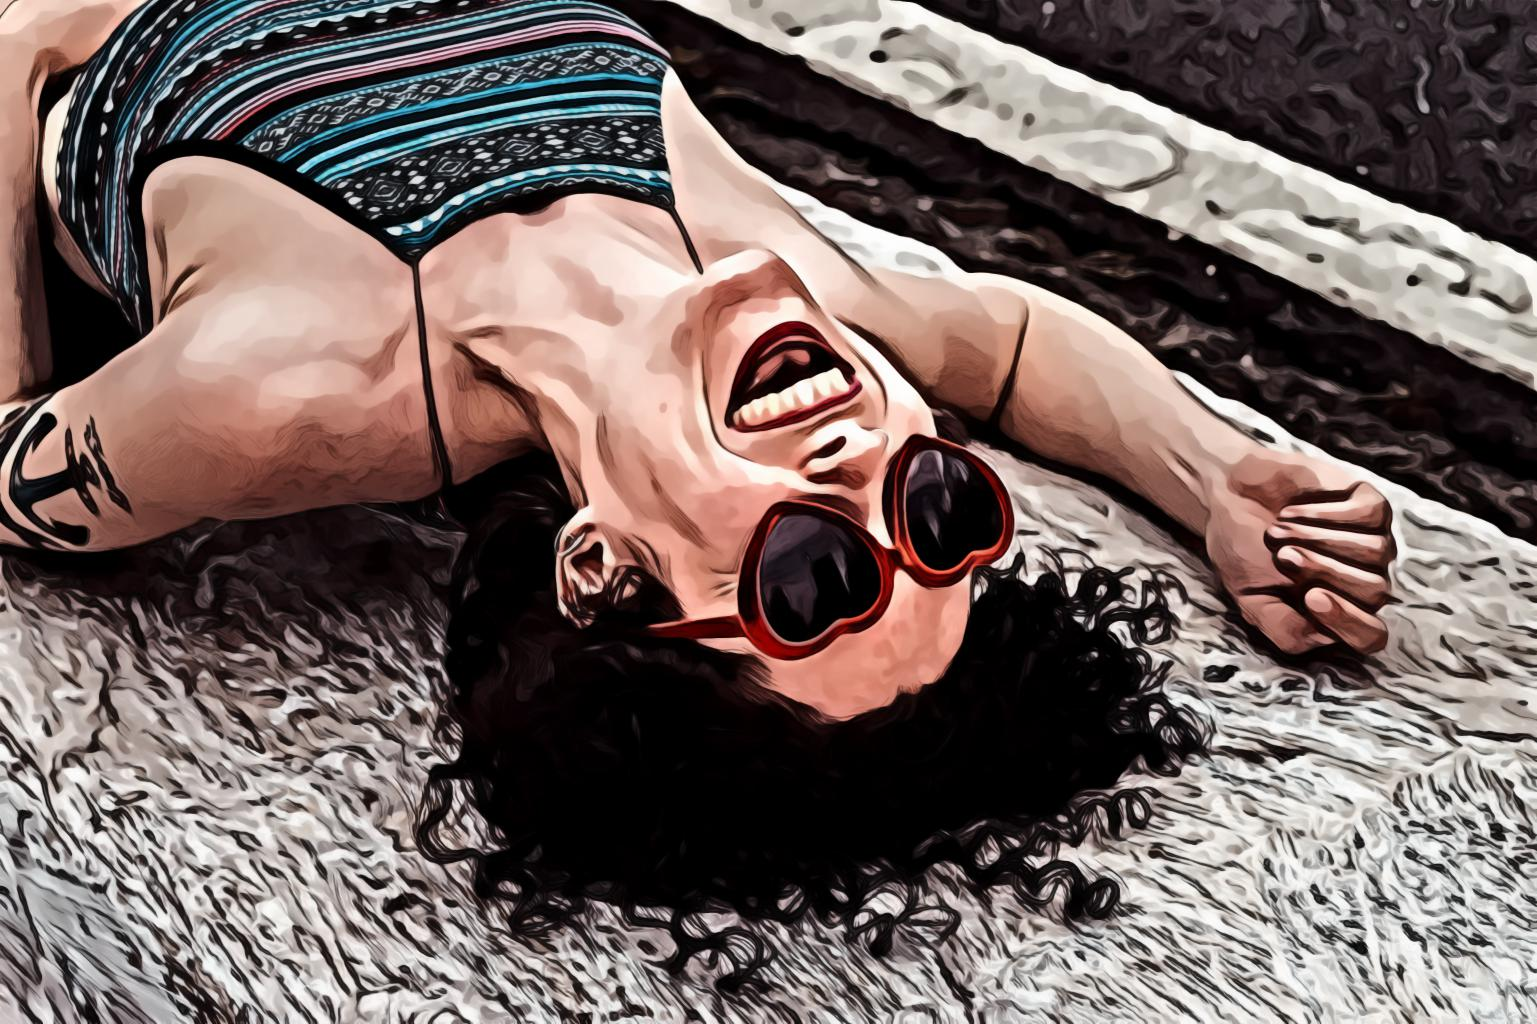 Woman laughing lying on concrete slab